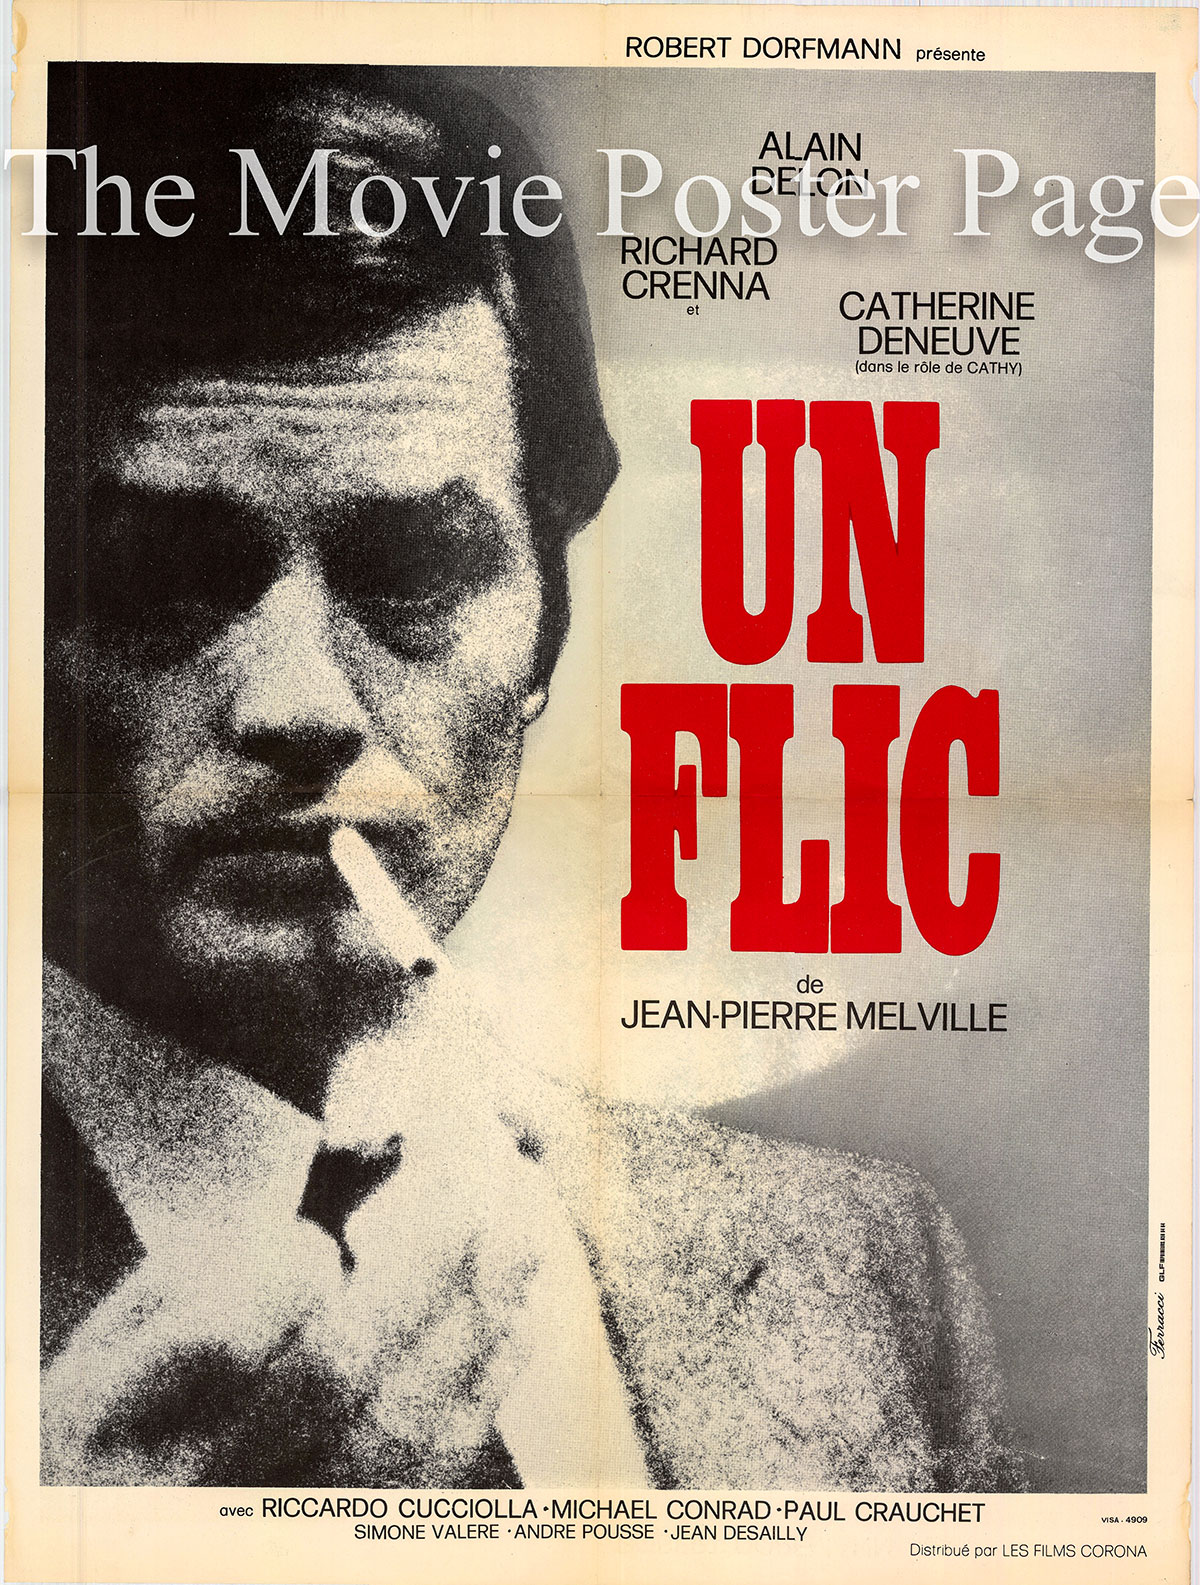 Pictured is a French 23x31 promotional film poster for the 1972 Jean-Pierre Melville film Dirty Money starring Alain Delon.